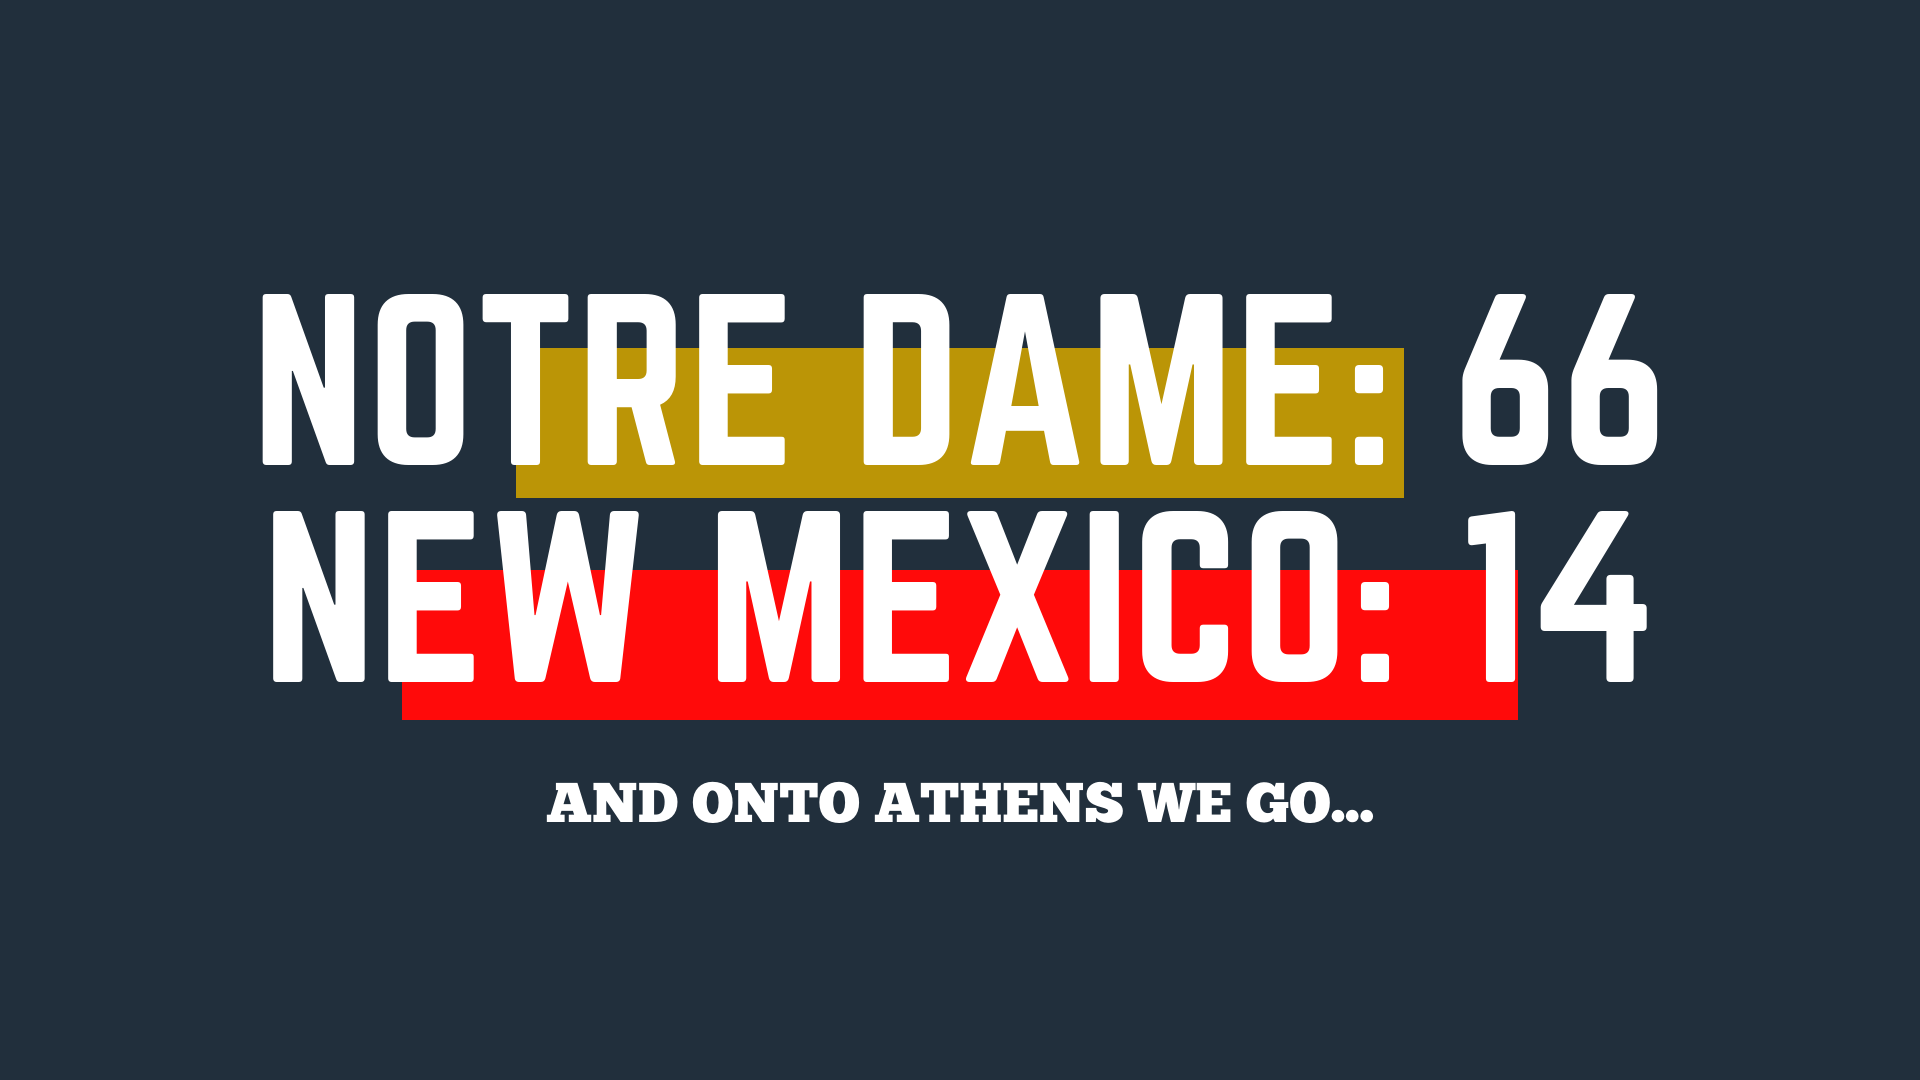 Notre Dame takes down New Mexico at home, and Georgia looms in the distance...